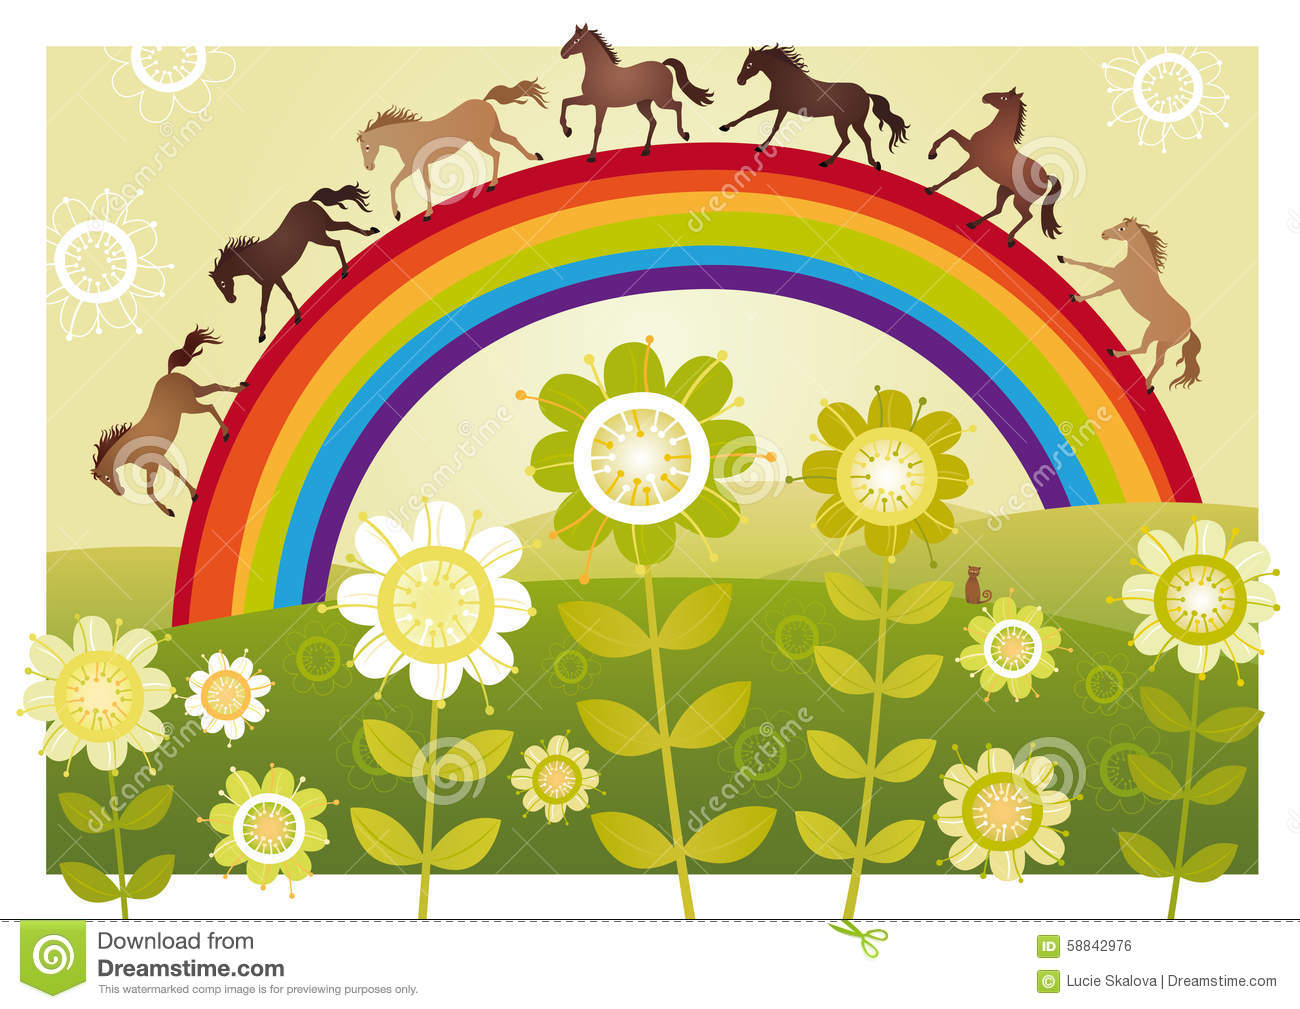 Flower garden with rainbow stock vector. Illustration of ... on rainbow flower design, rainbow flower bulbs, rainbow flower weddings, natural pools and gardens, rainbow flower trees, rainbow grass, rainbow flower plants, rainbow flower art, rainbow flower arrangement, rainbow flower tattoos, rainbow colored flowers, rainbow flower roses, philadelphia magic gardens, rainbow photography, rainbow flower cake, rainbow nature, beautiful spring gardens, rainbow flower paintings, rainbow fields, rainbow flower landscape,